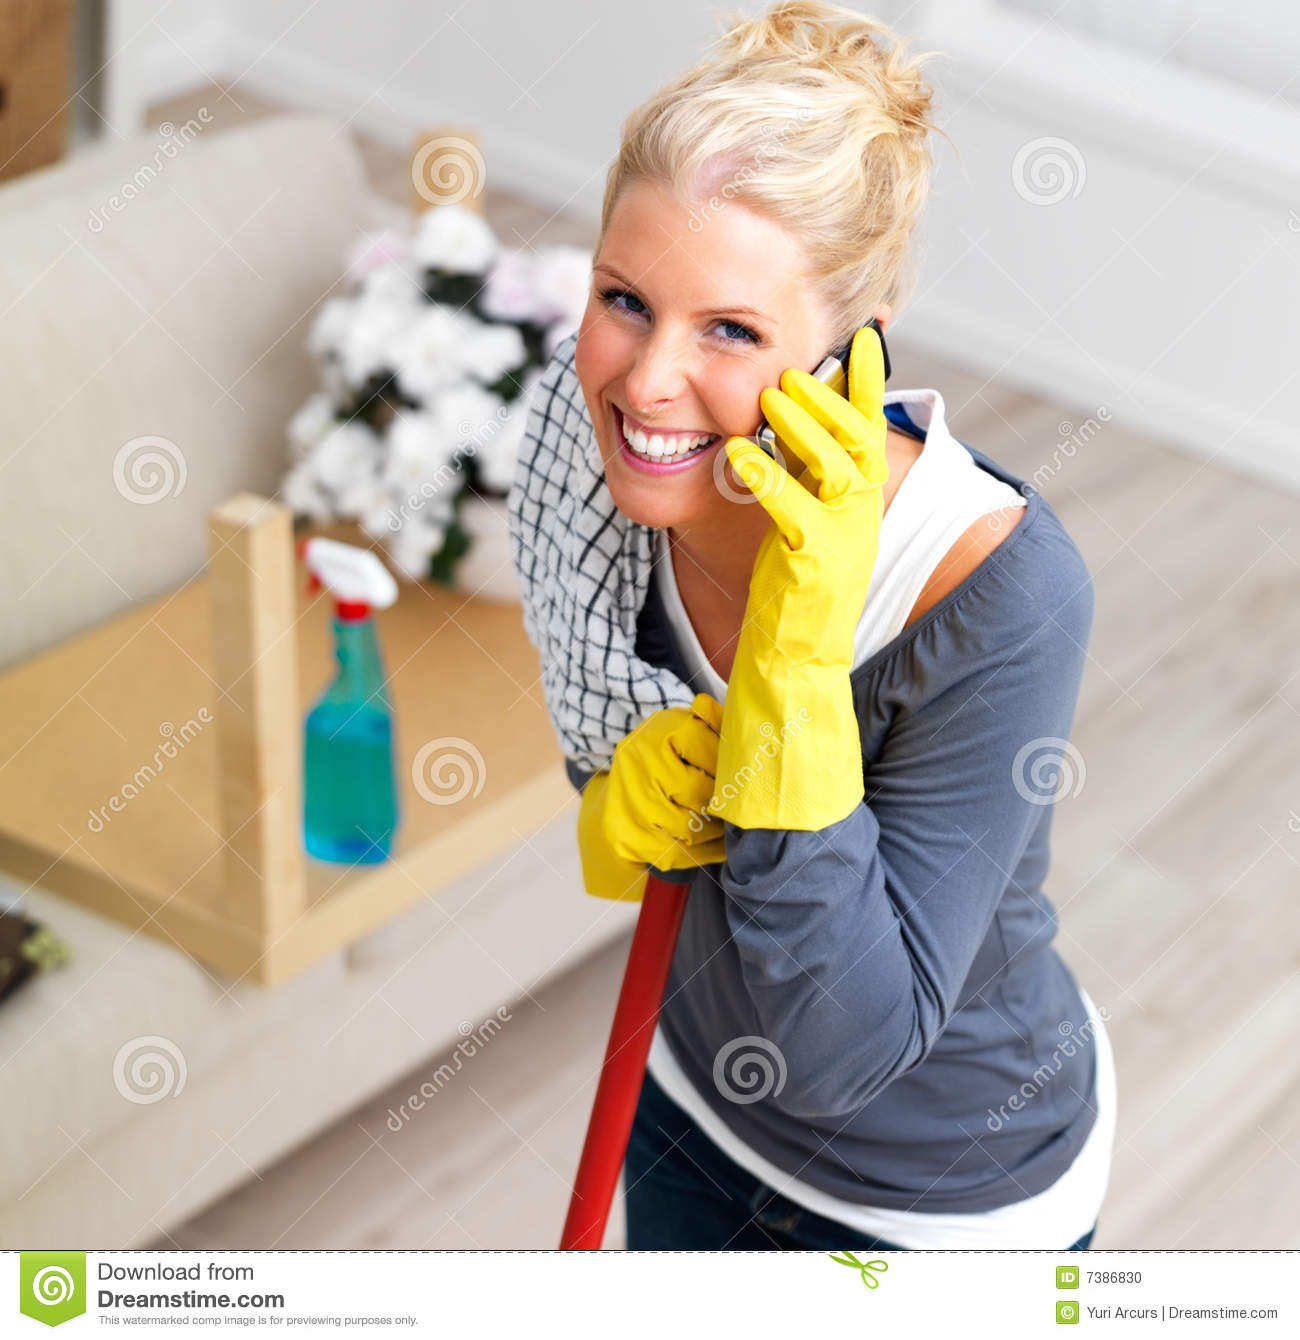 dating a cleaning lady